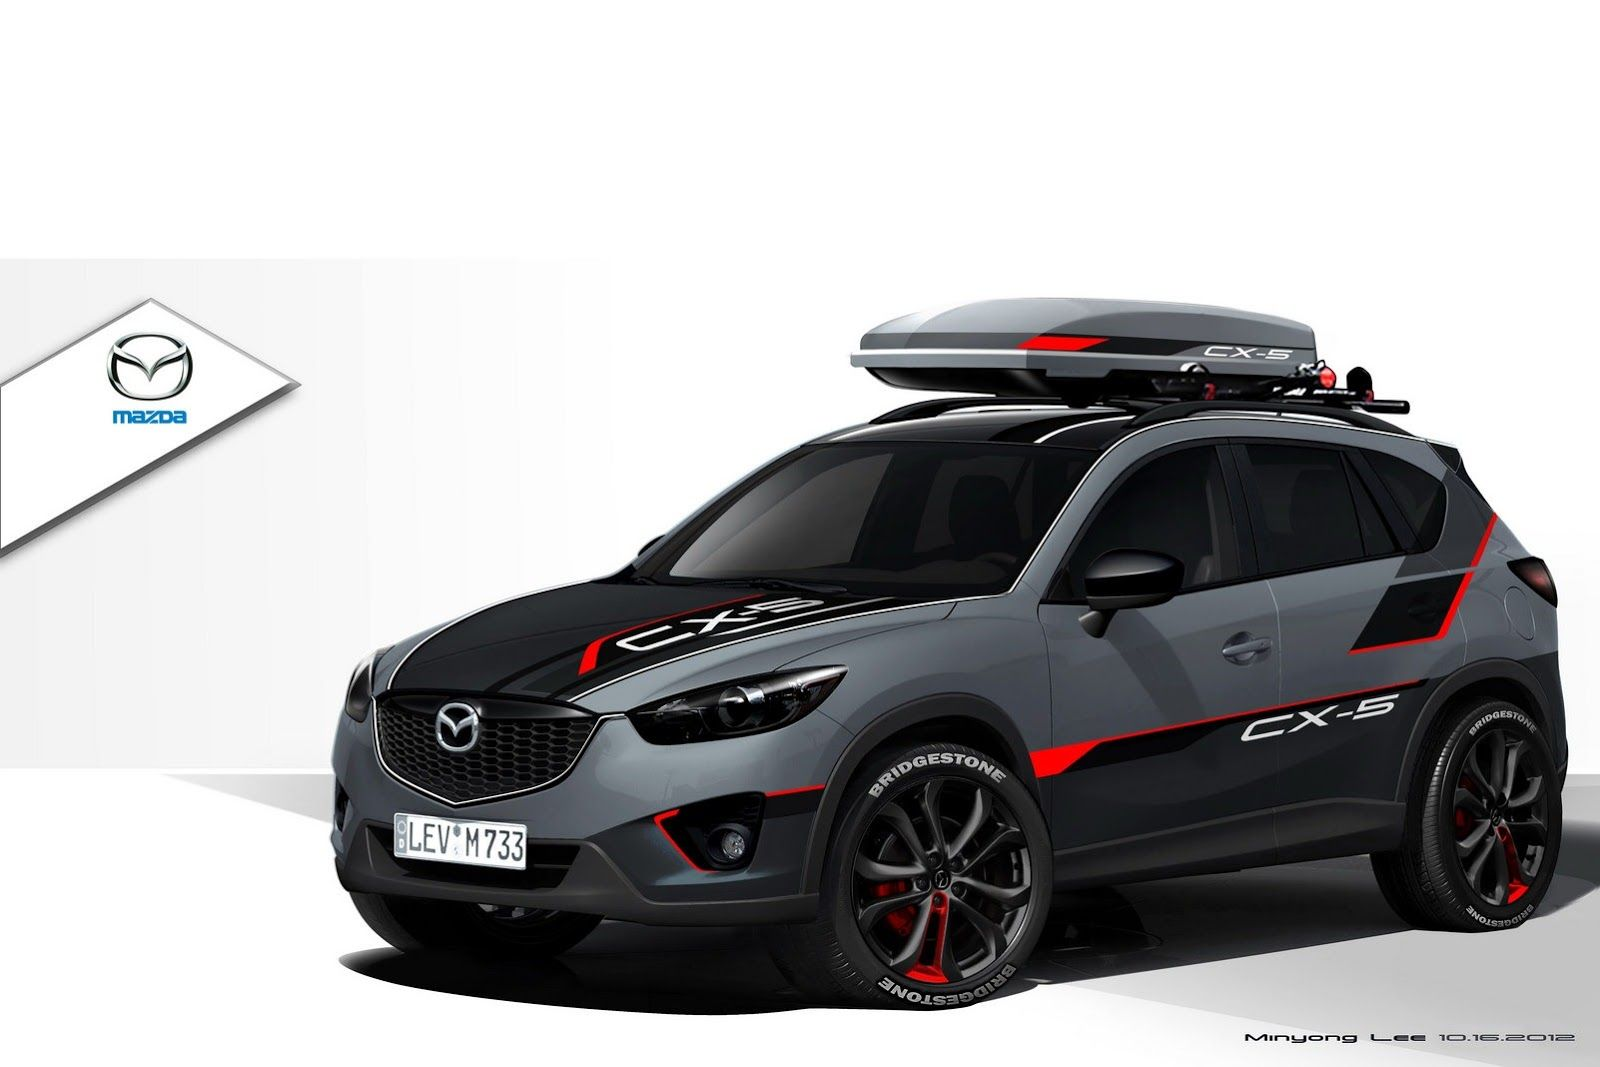 mazda brings 3 concept versions of cx 5 crossover to sema including a diesel variant wraps y. Black Bedroom Furniture Sets. Home Design Ideas